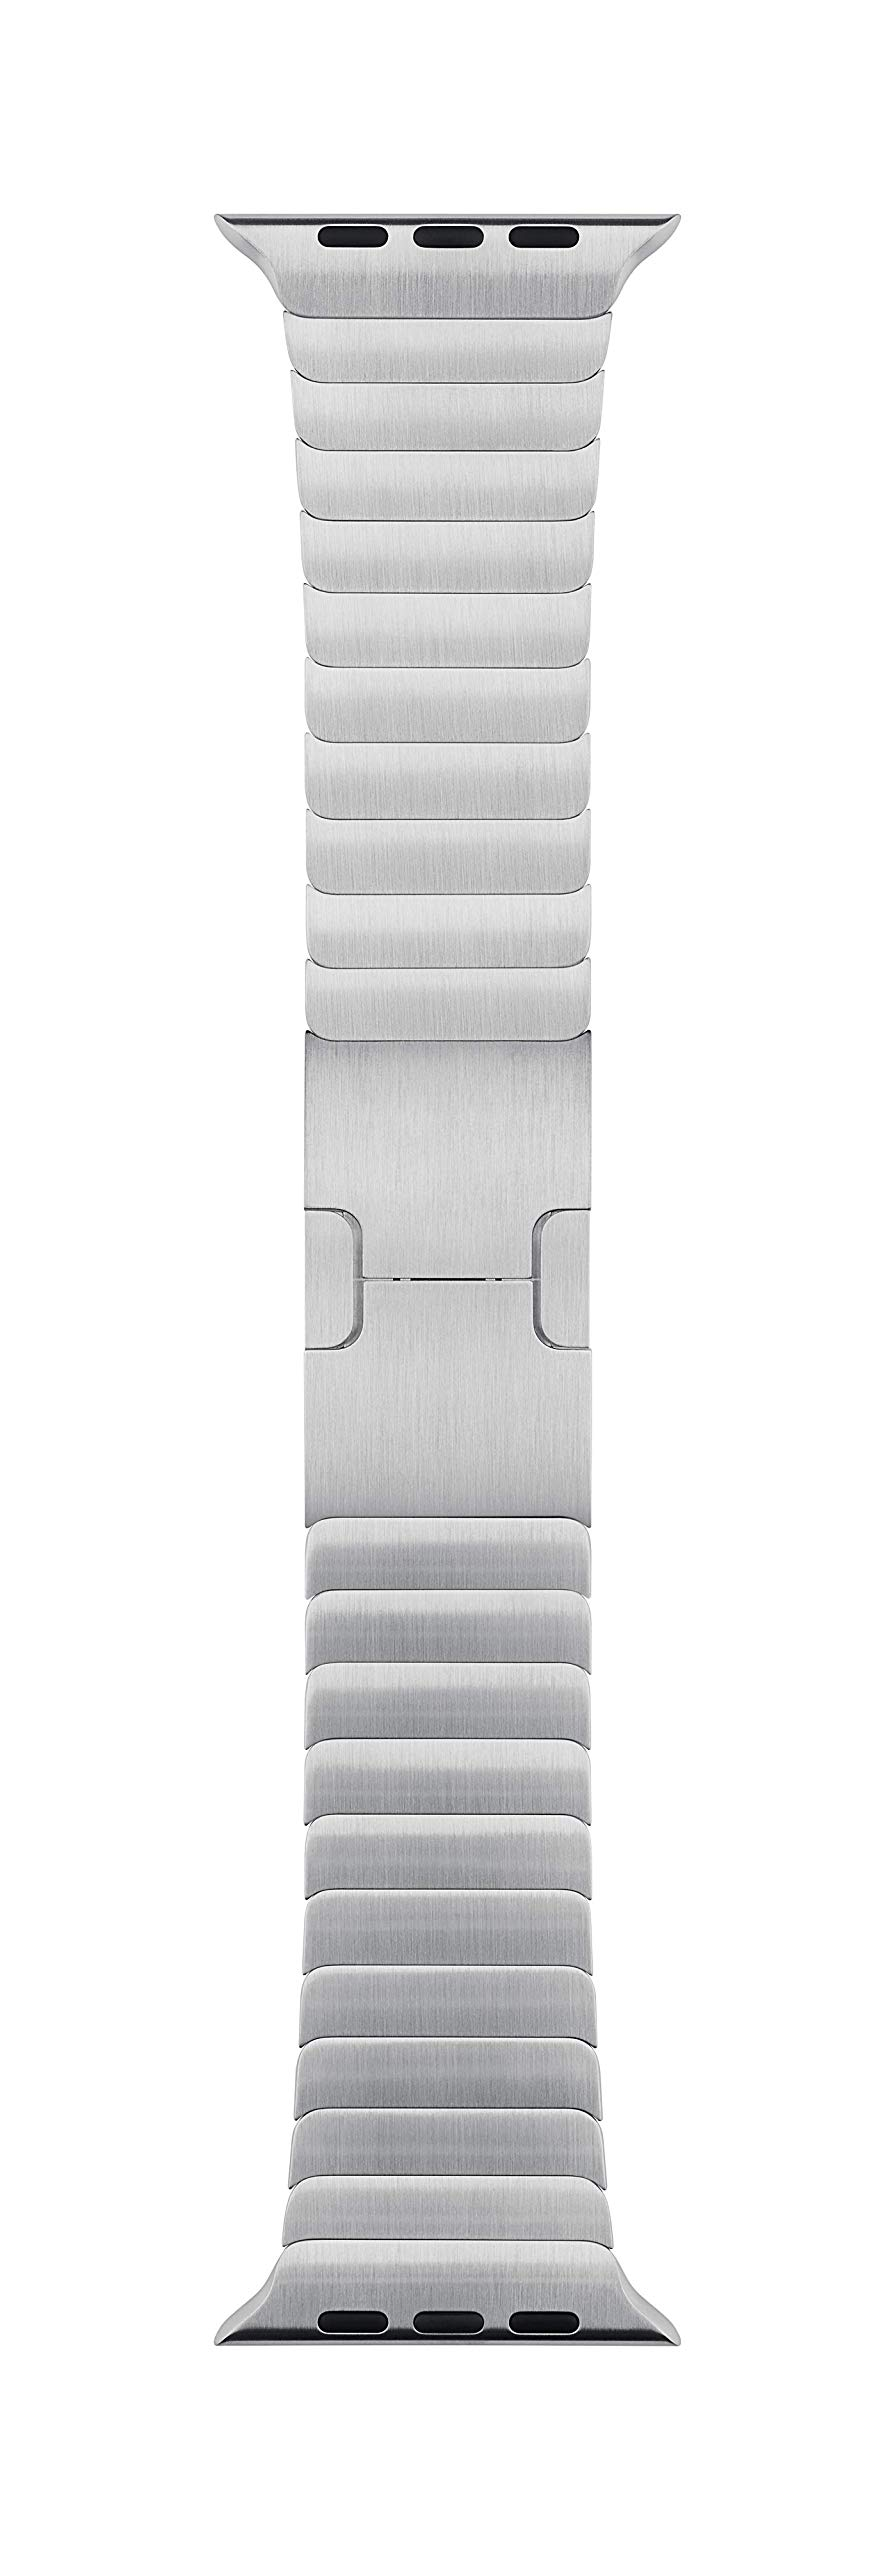 Apple Watch Link Bracelet (42mm) - Silver by Apple